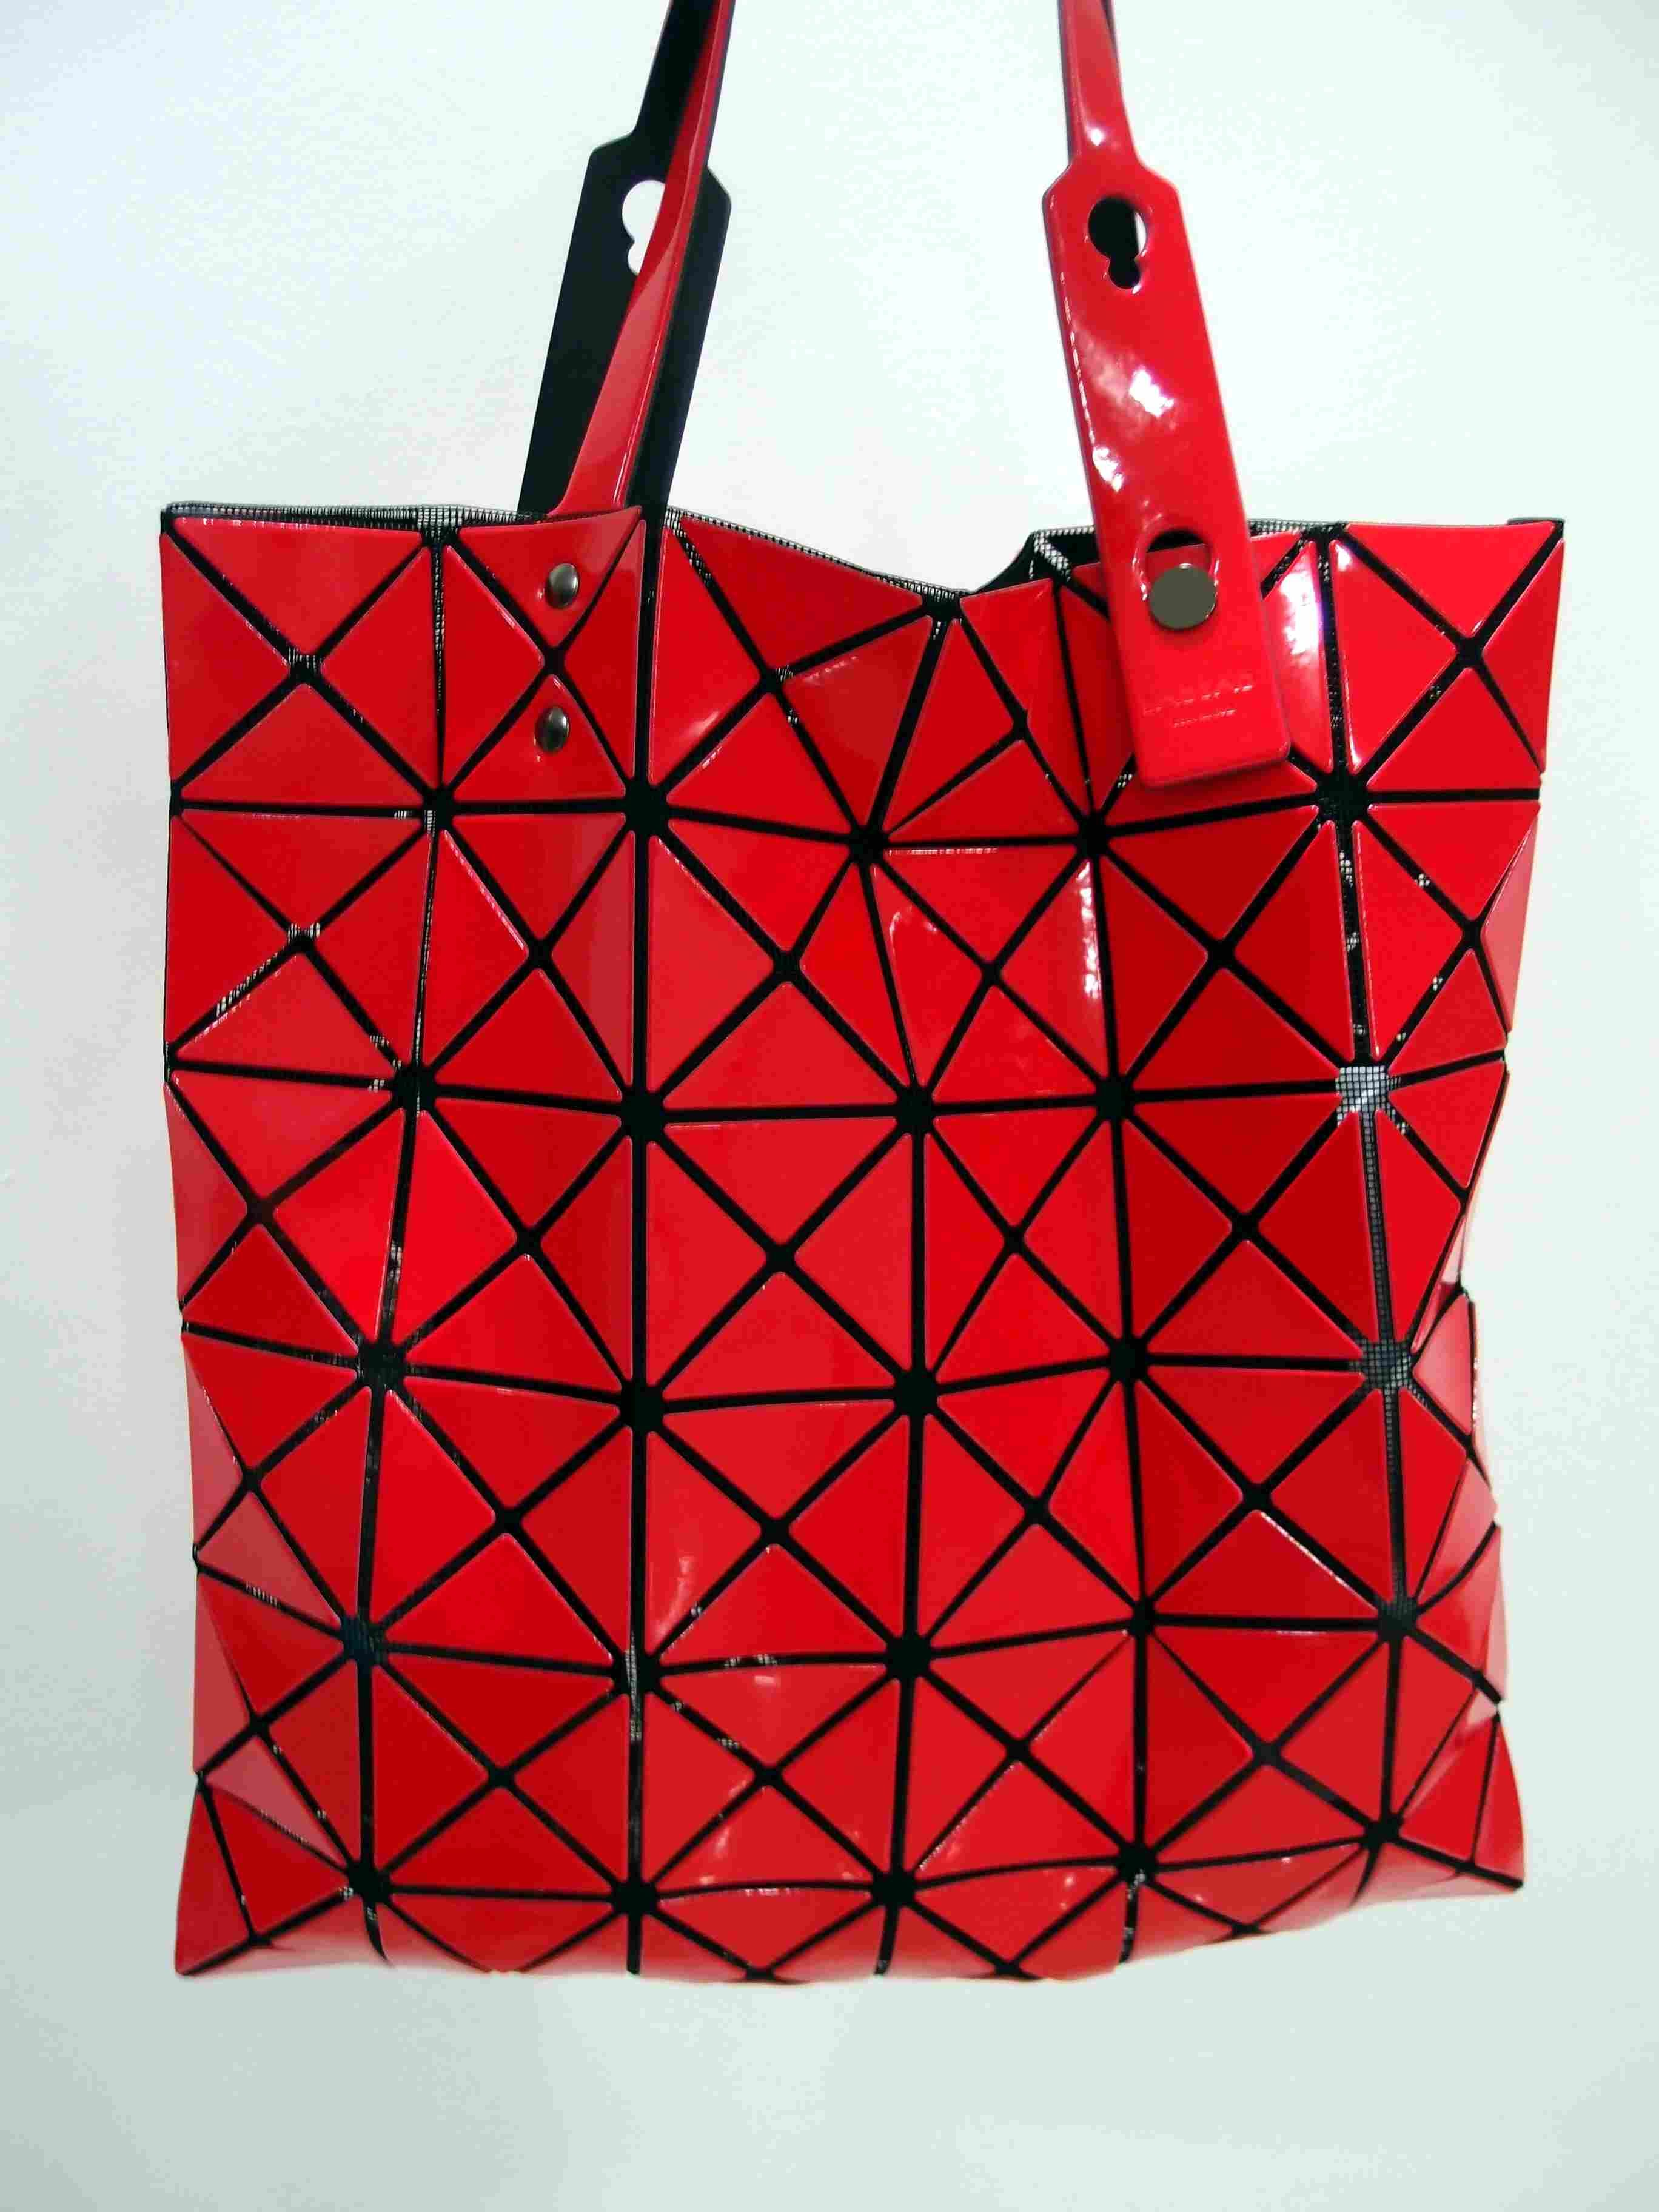 Pin by mnd on Issey Miyake wish list  26d04ad71a79d